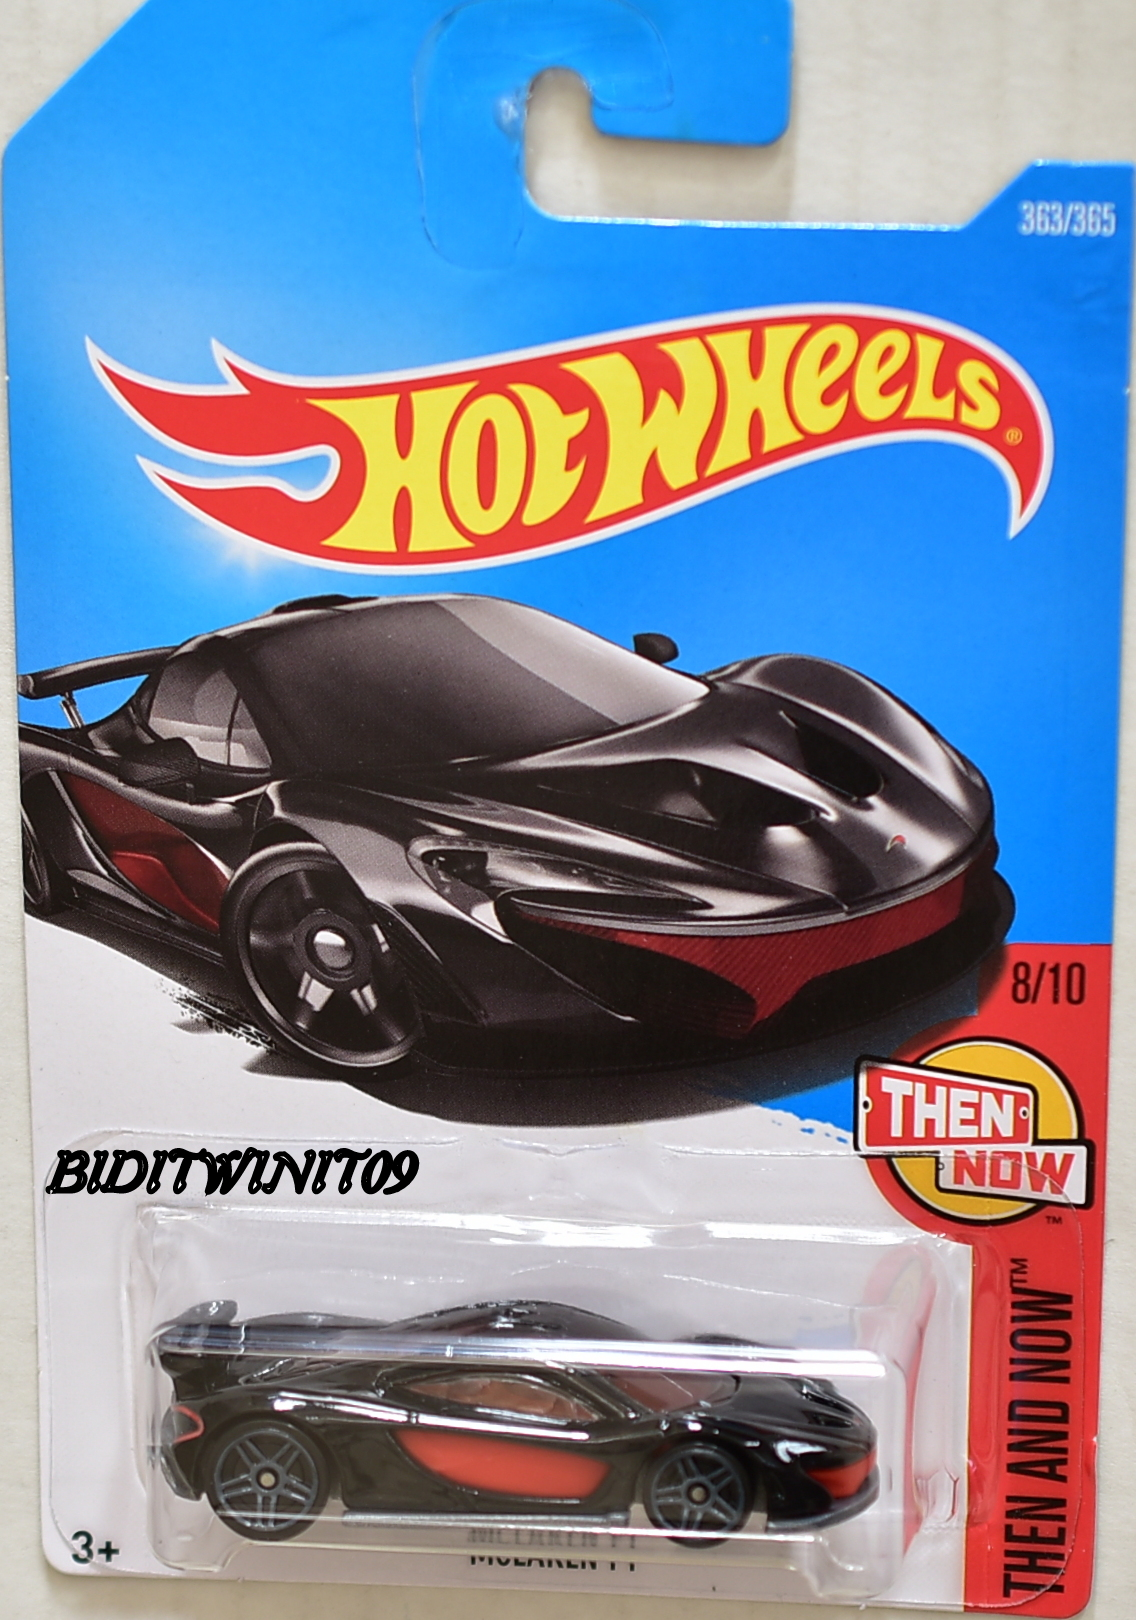 HOT WHEELS 2017 THEN AND NOW MCLAREN P1 #8/10 BLACK